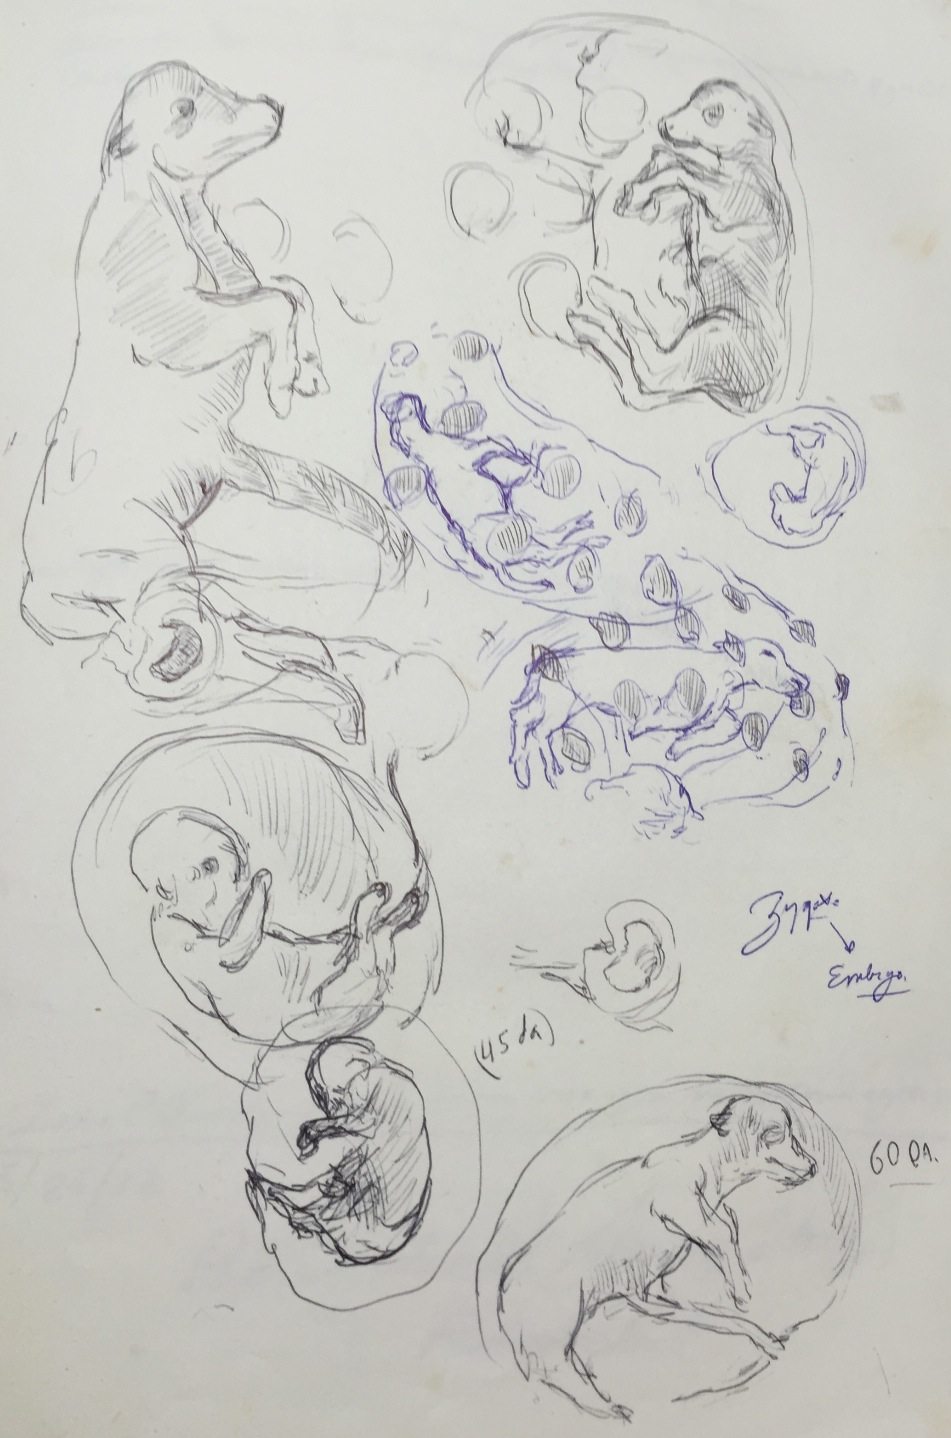 Bovine Embryology Studies